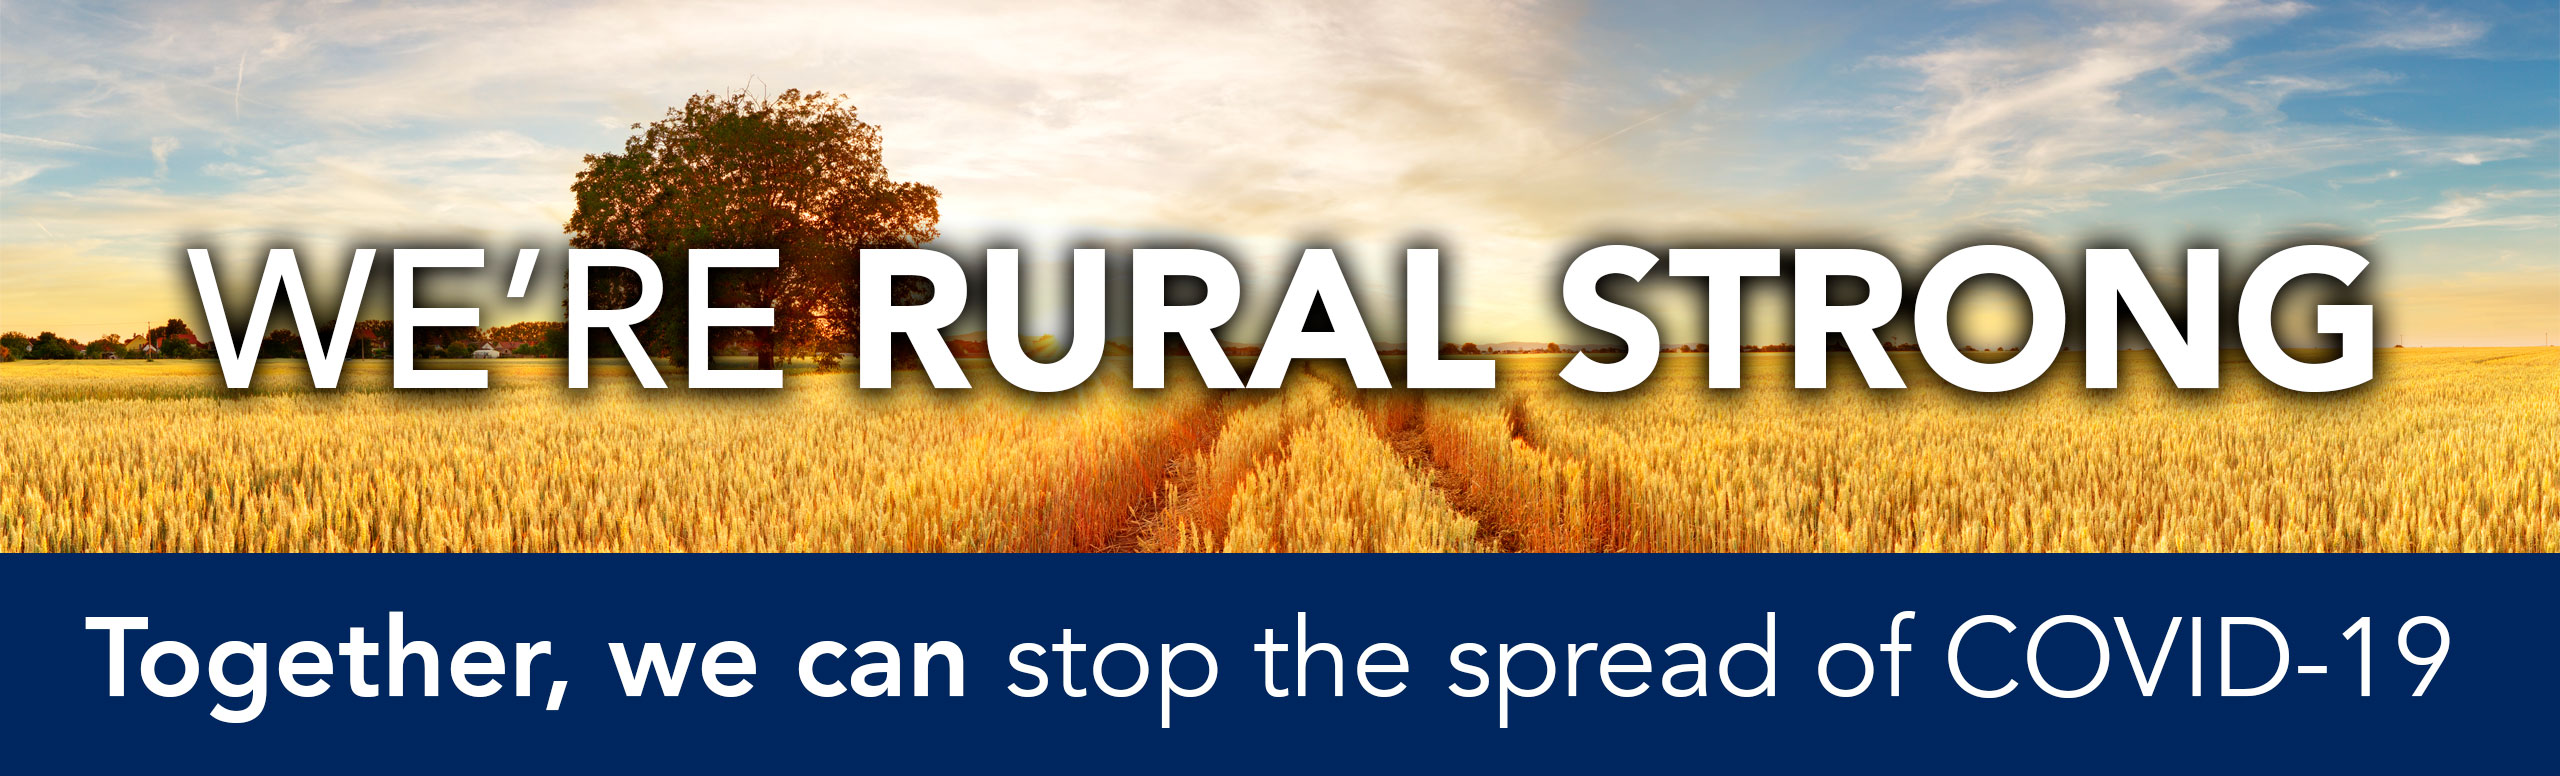 We're Rural Strong  Together, we can help stop the spread of COVID-19